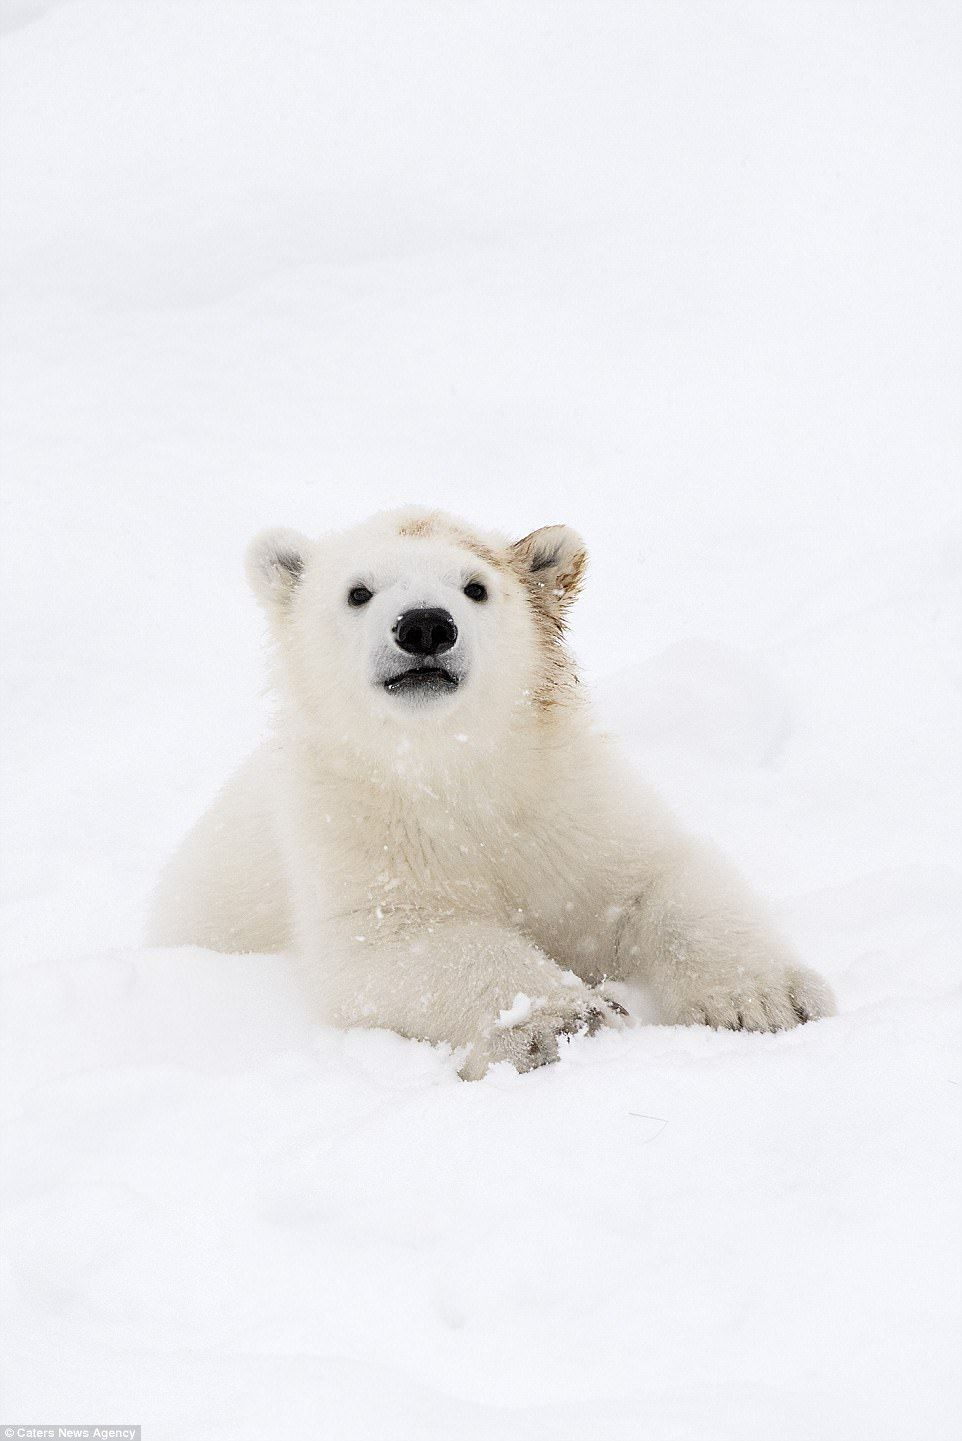 'Where's mum?' - the super cute polar bear can't seem to find his mother and looks confuse...